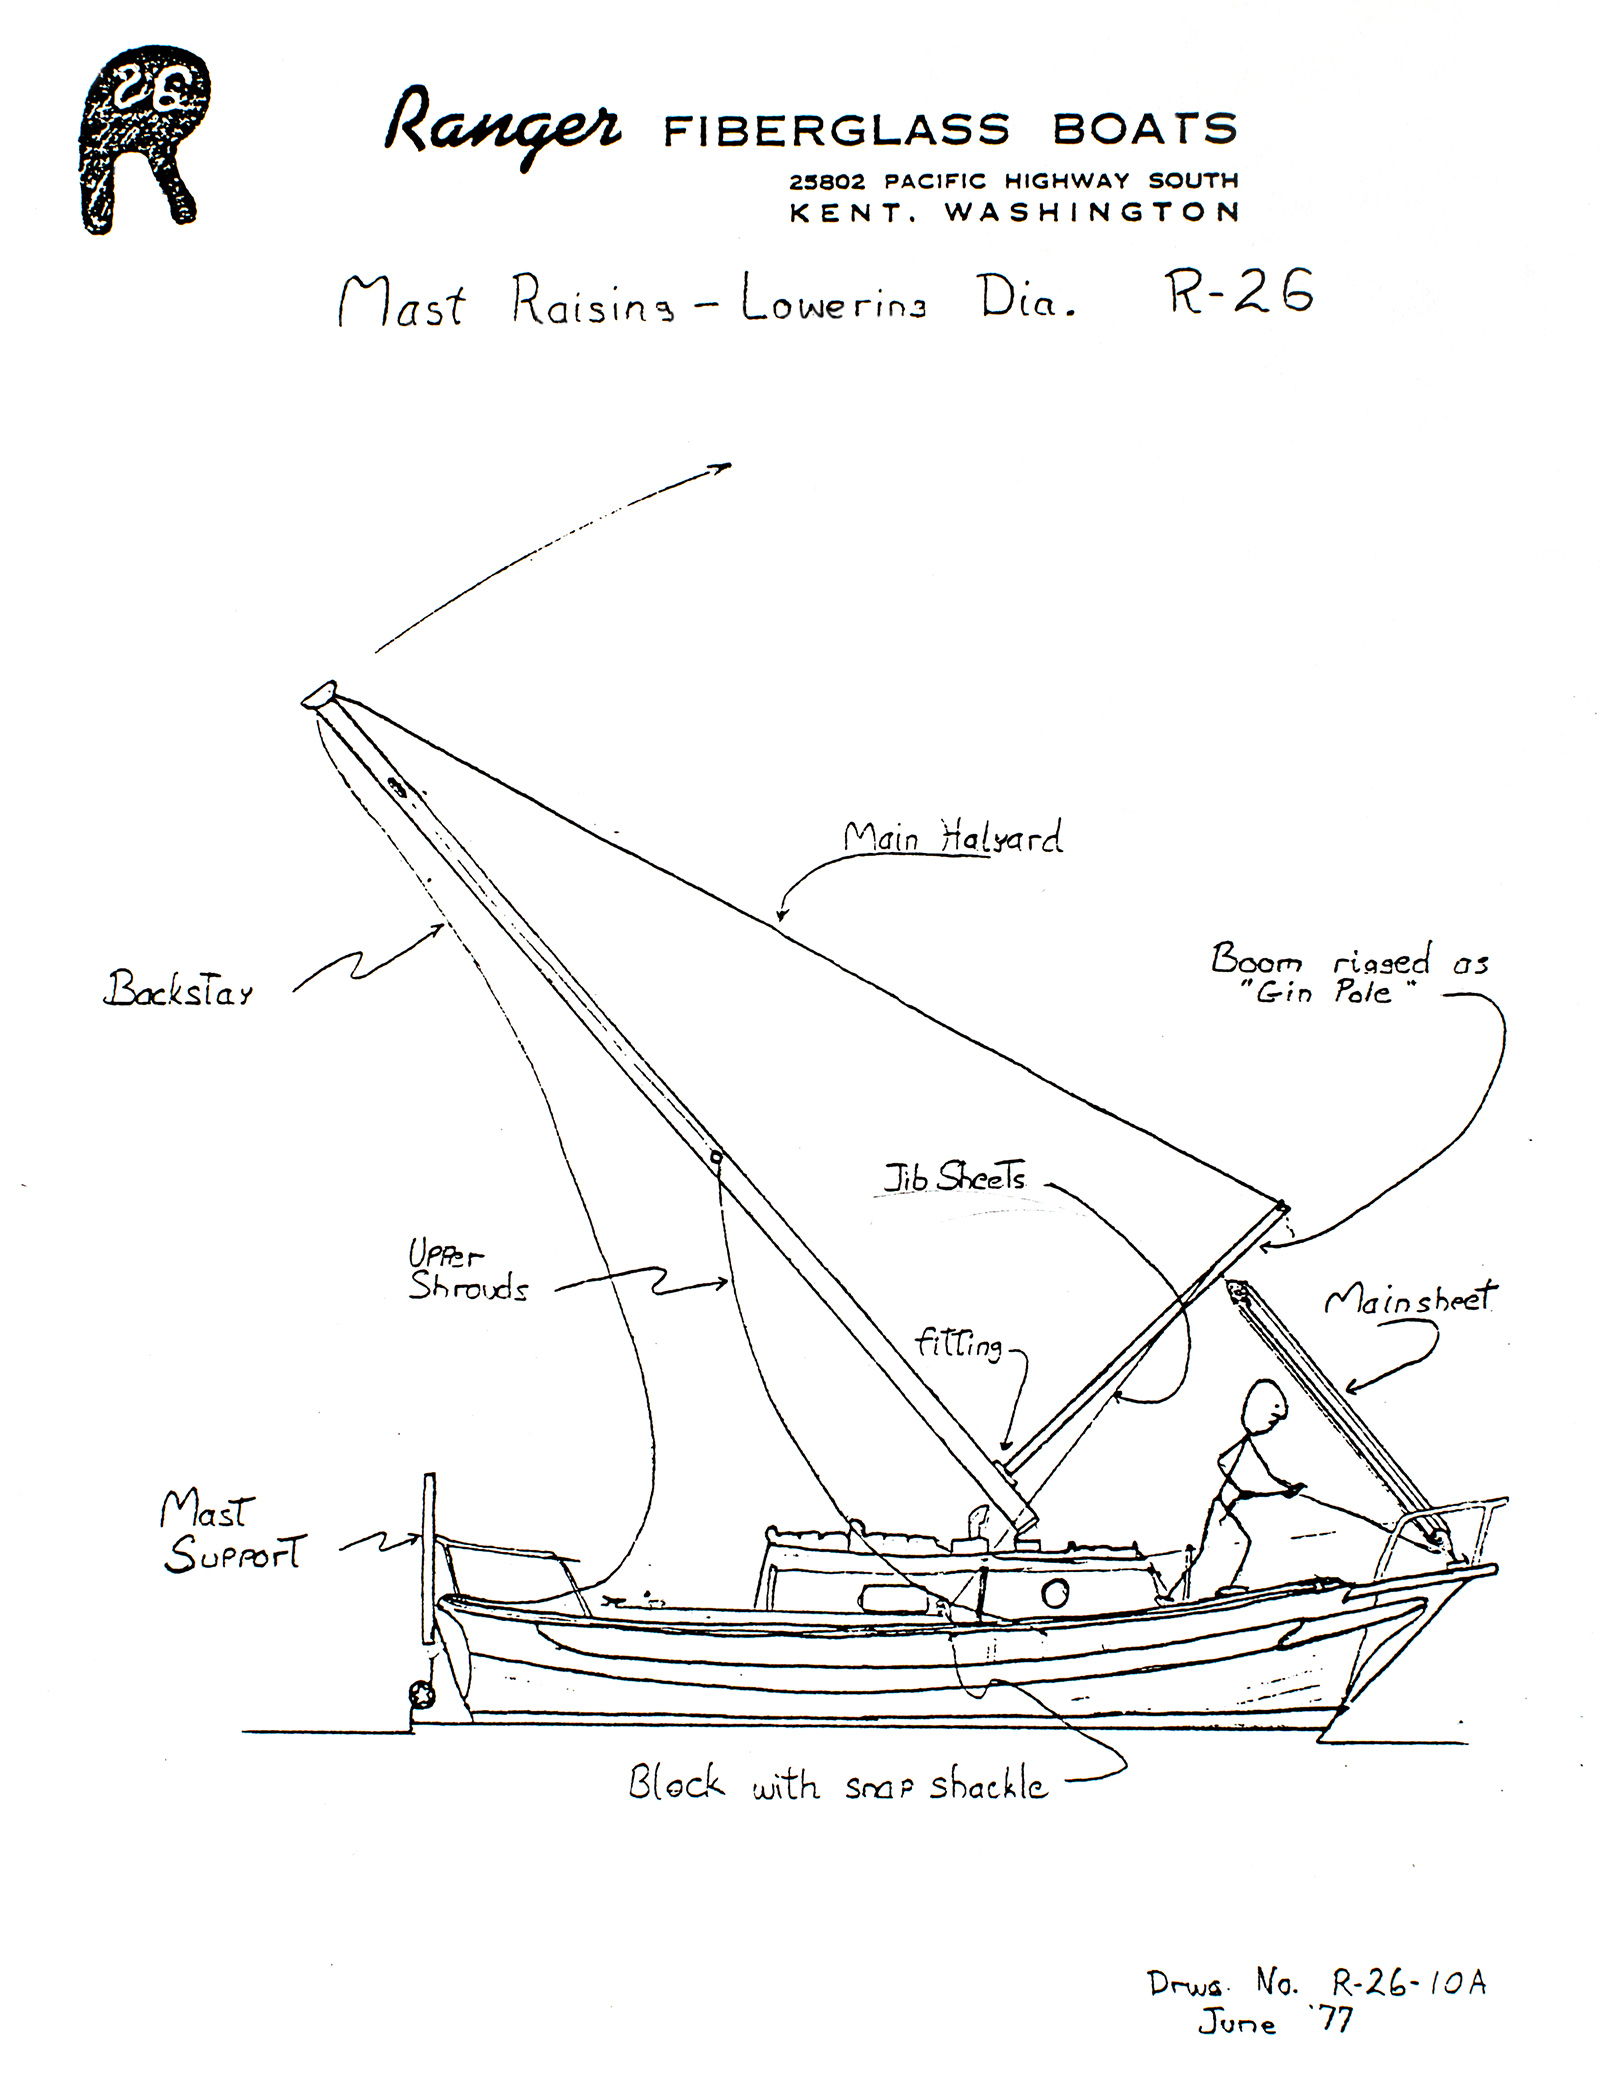 mast raising lowering diagram for the ranger 26 sailboat kent washington  [ 1600 x 2100 Pixel ]